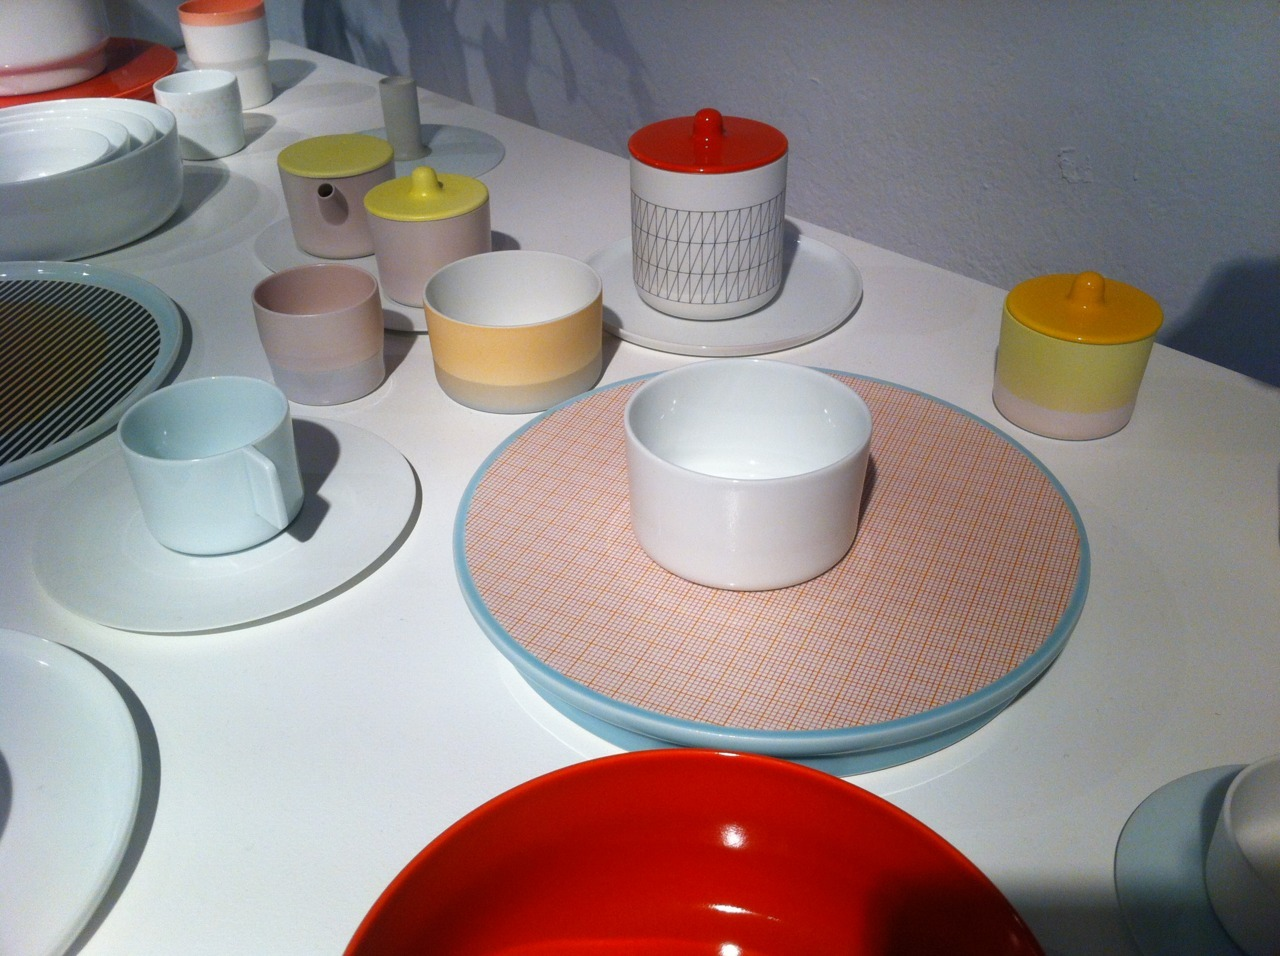 Scholten & Baijings for 1616 Arita Japan at Spazio Rossana Orlandi in Milan. By far one of my favorite palettes from my week at Milan Fuorisalone. Soft, glossy pastels mixed with matte gradients of gentle hues offset by bright poppy reds, low gloss metallics and delicate, grid-like patterns. Stunning.